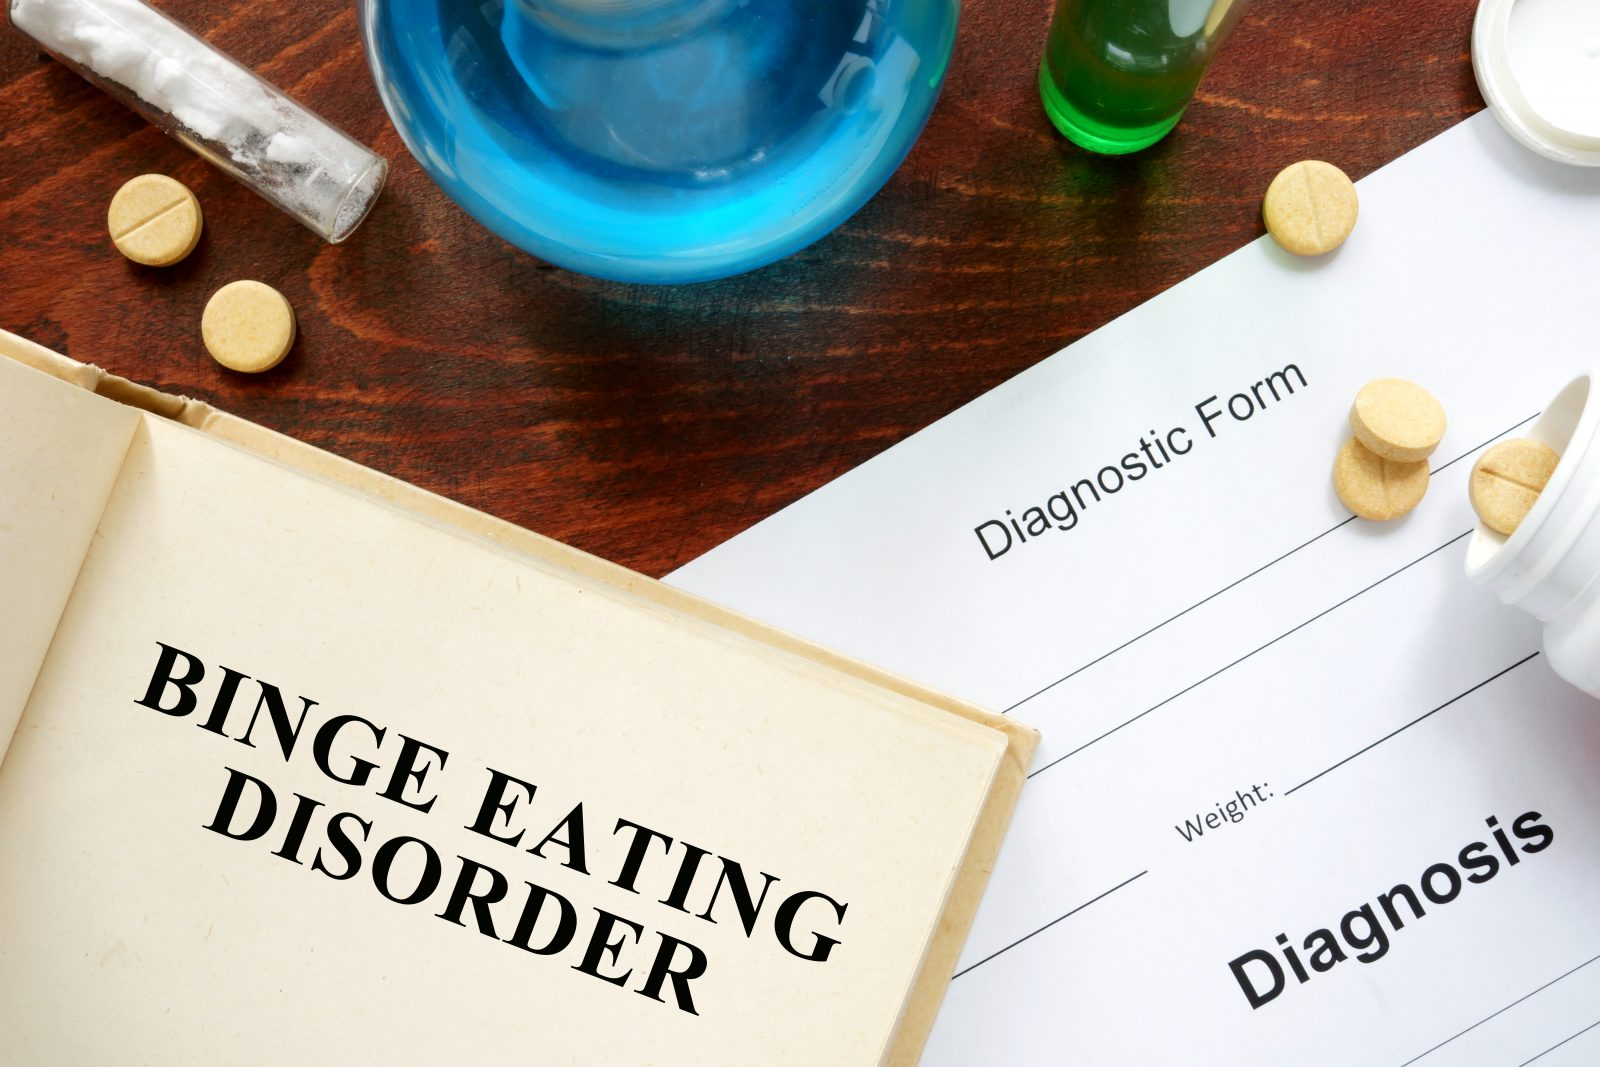 What You Can Expect from Eating Disorder Programs